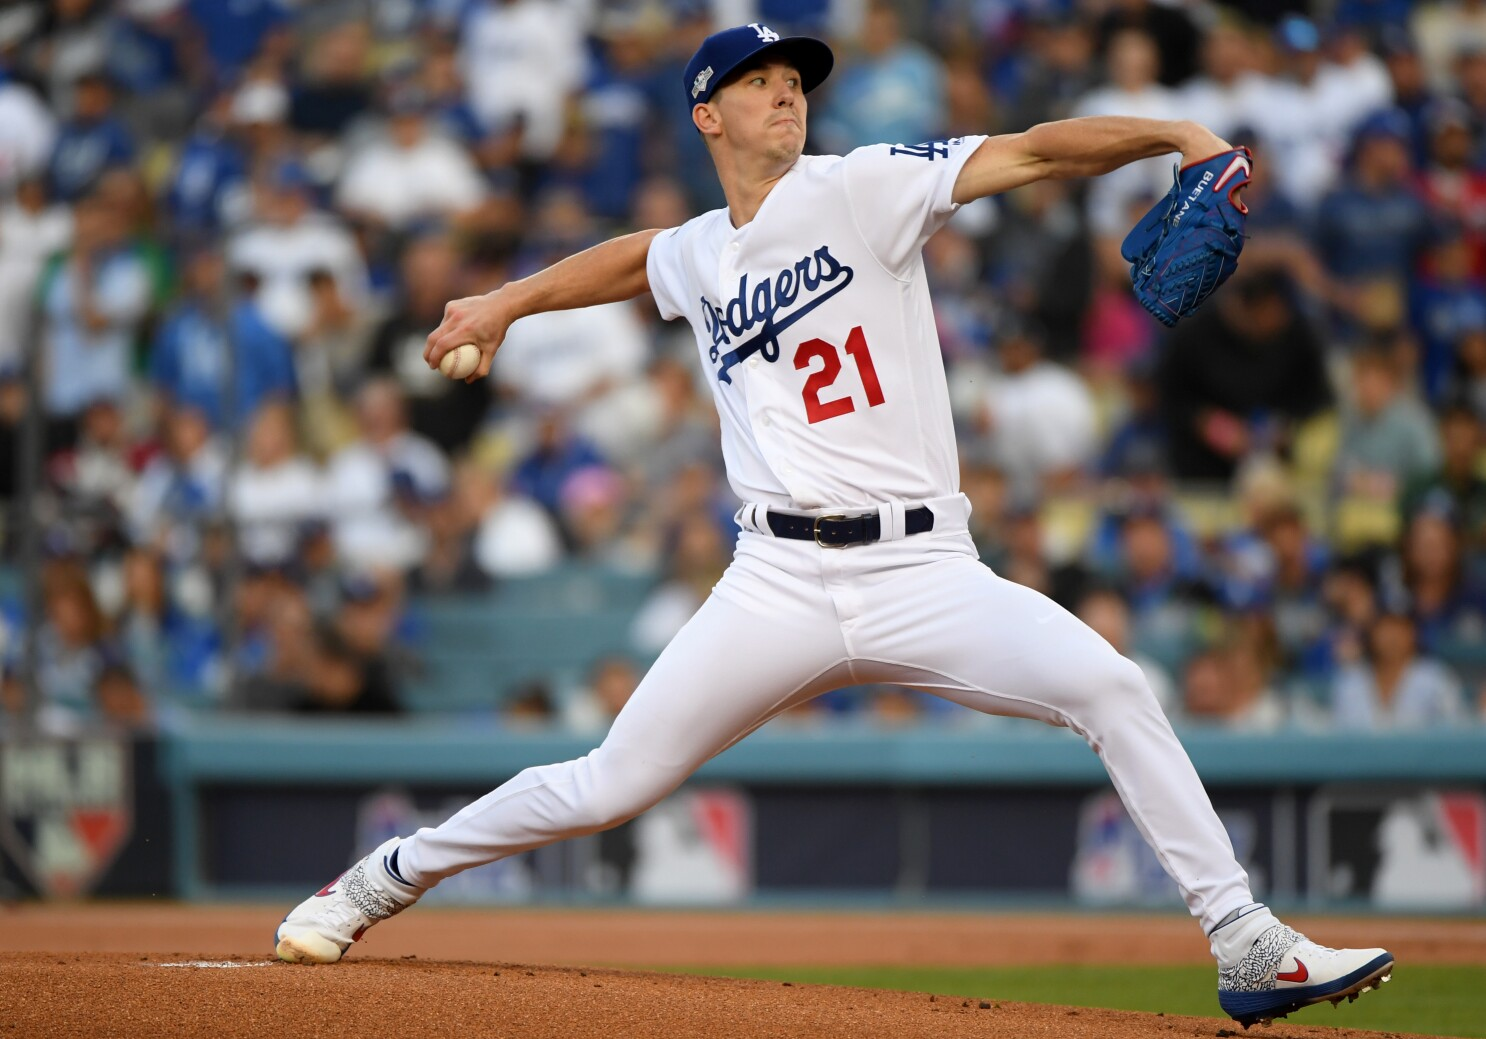 Walker Buehler sharp and so are Dodgers as they win twice - Los Angeles Times